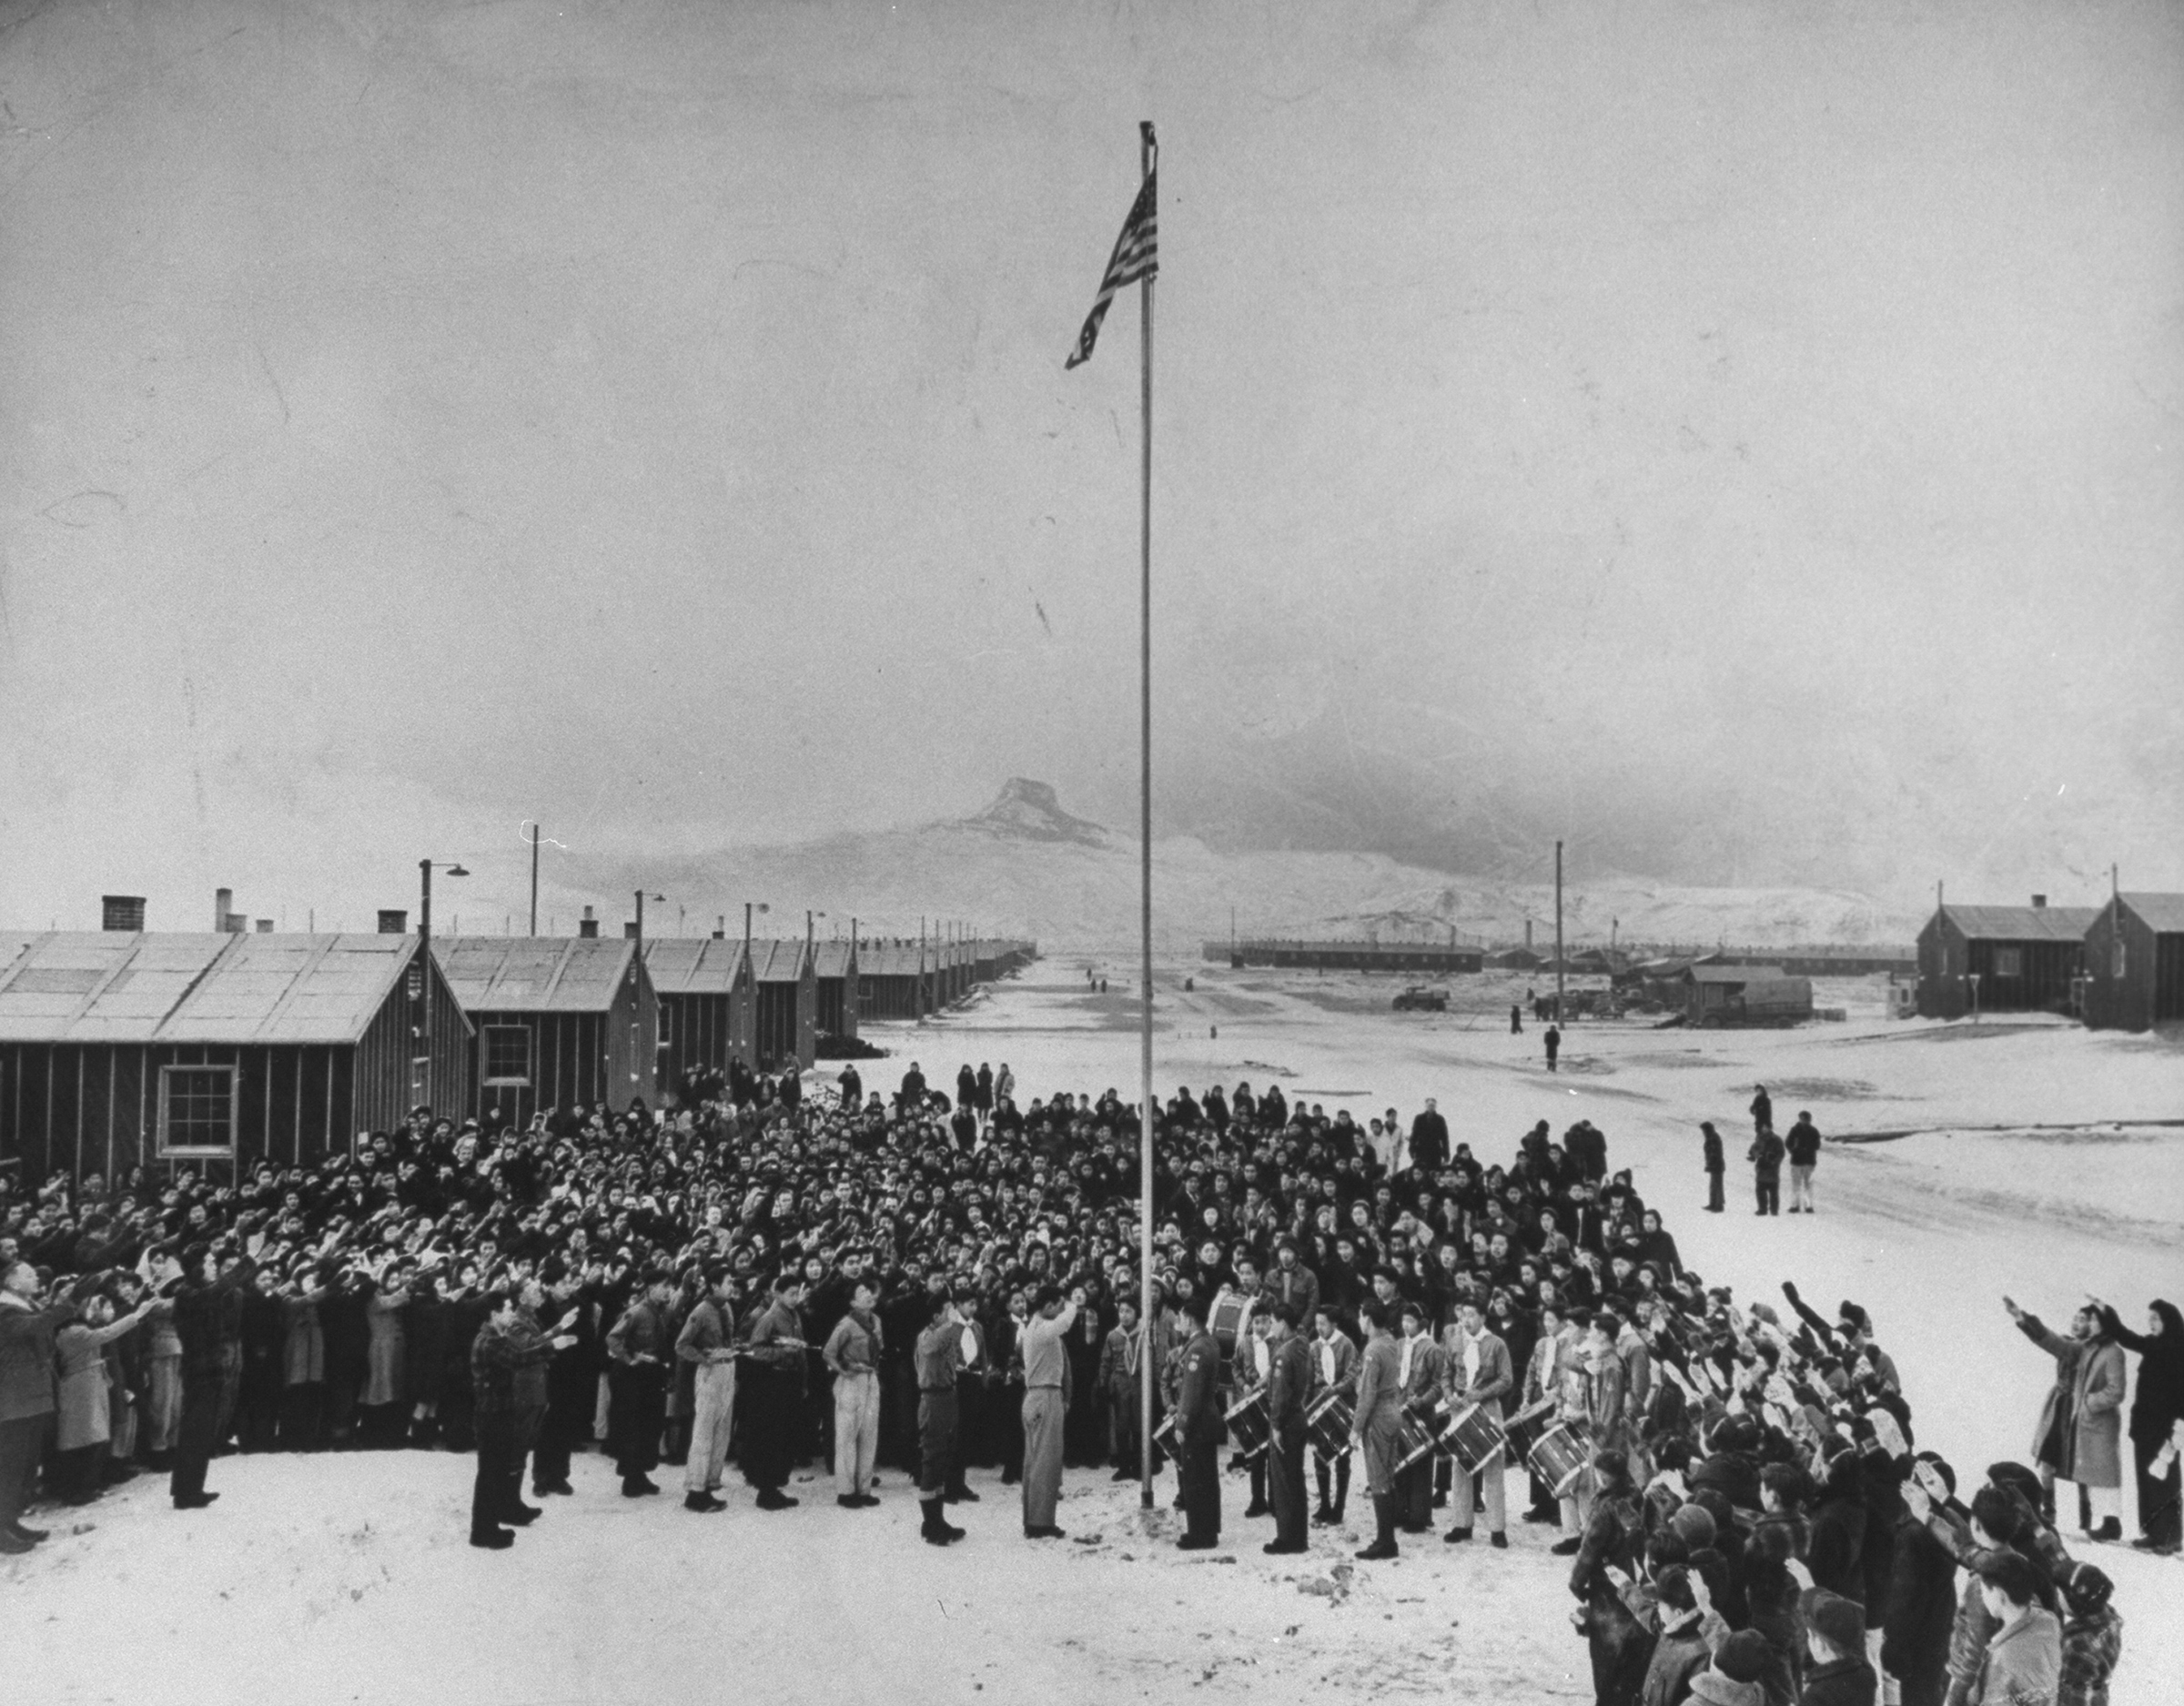 Nisei Japanese-Americans participating in a flag saluting ceremony at a relocation center in forced internment during WWII, 1942.